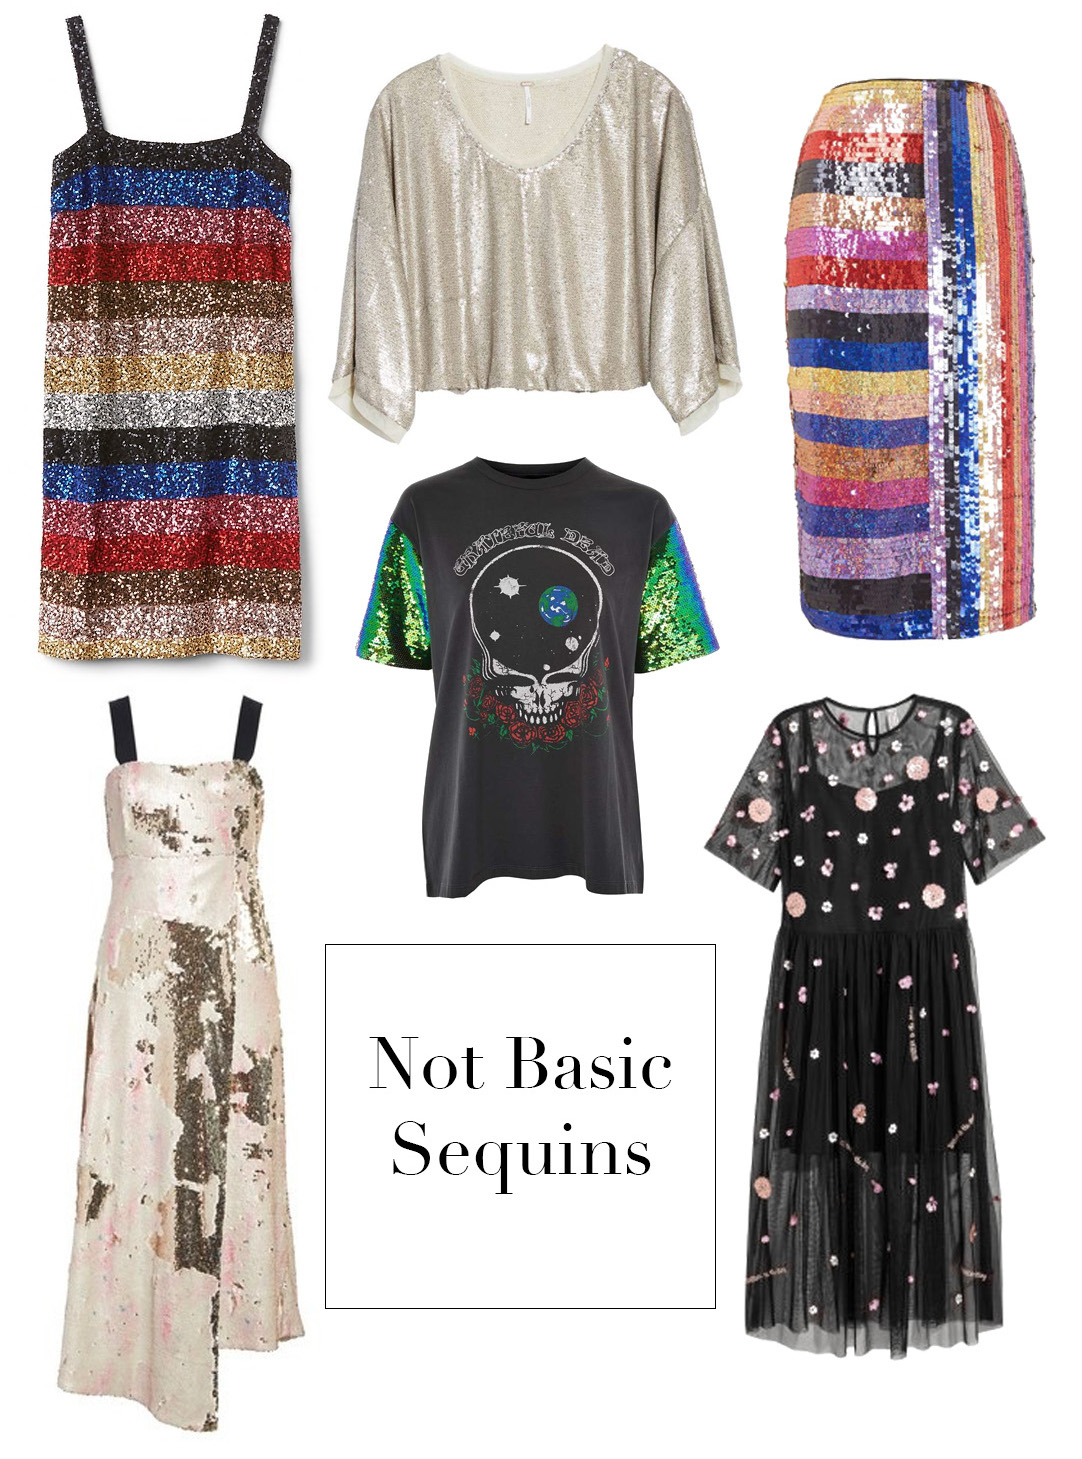 sequins, chic sequins, not basic sequin options